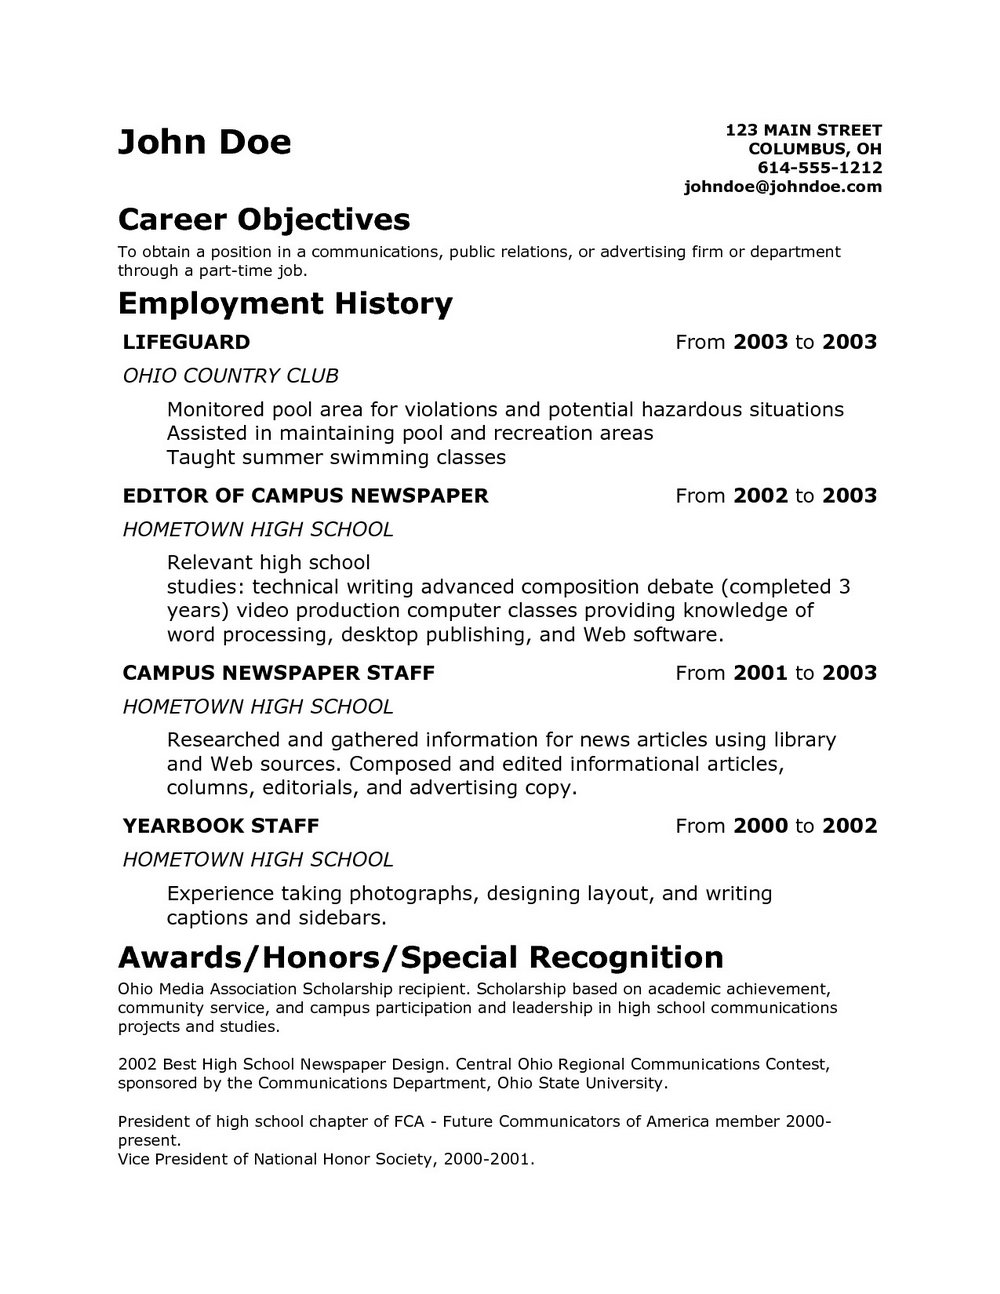 Examples Of Resumes For Teenagers